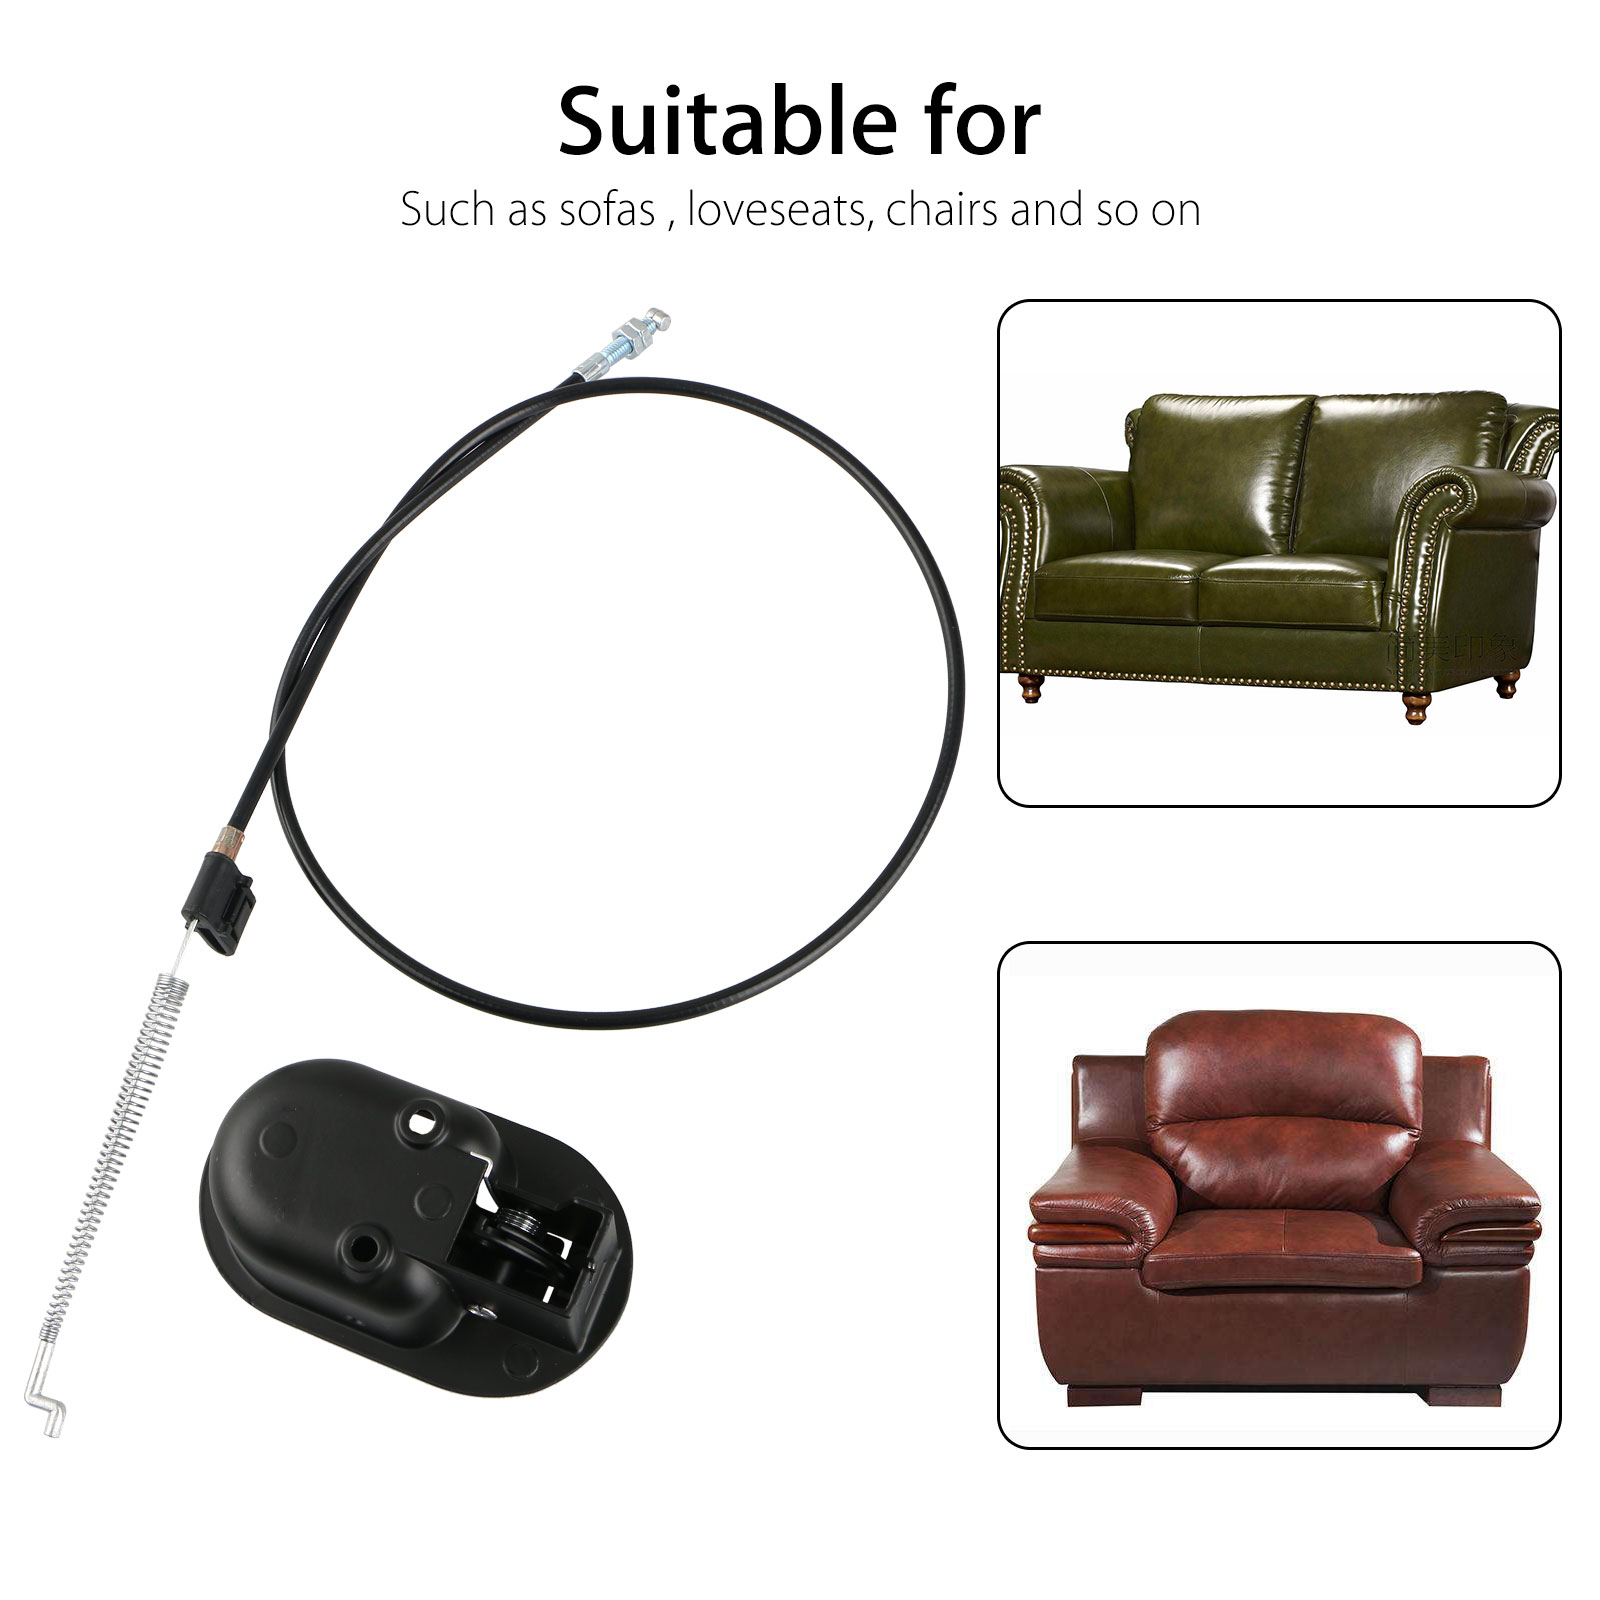 Universal Plastic Sofa Chair Recliner Release Pull Handle Replacement Parts With Cable Fits For Ashley And Most Major Recliner Brands Sofa Exposed Cable Length 4 75 Total Length 36 Walmart Com Walmart Com